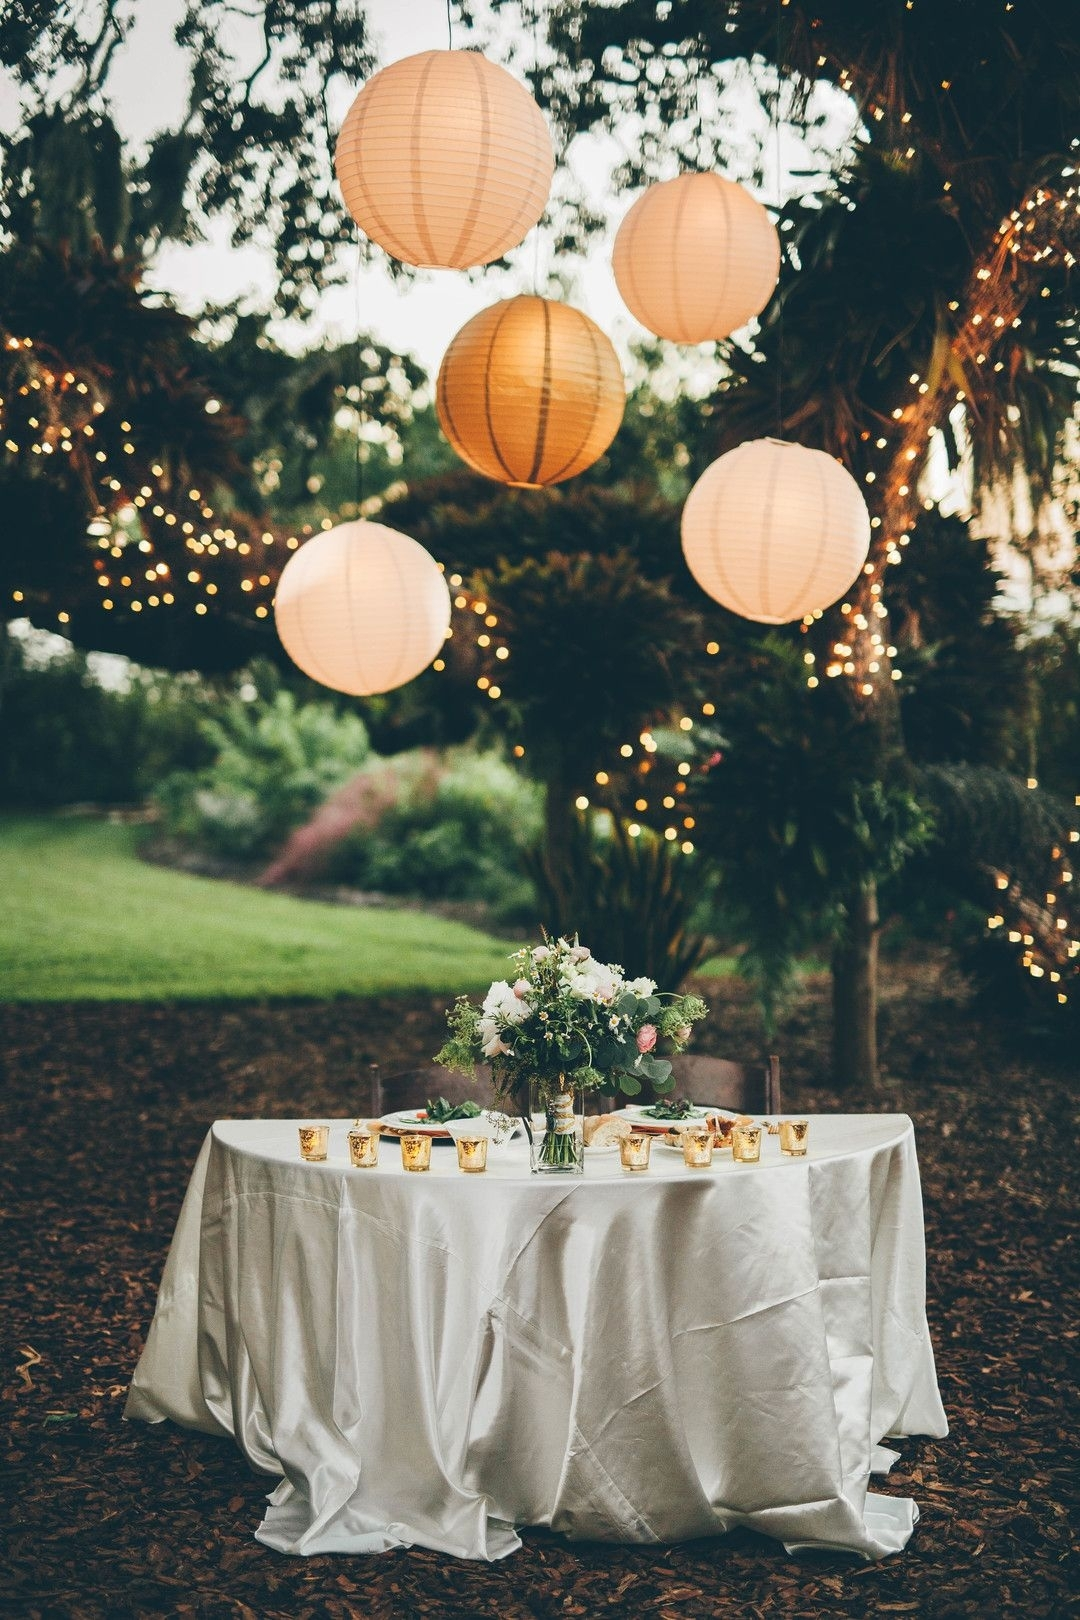 Wedding Reception Lighting Design, Paper Lantern Globes, Trees for Outdoor Paper Lanterns (Image 20 of 20)